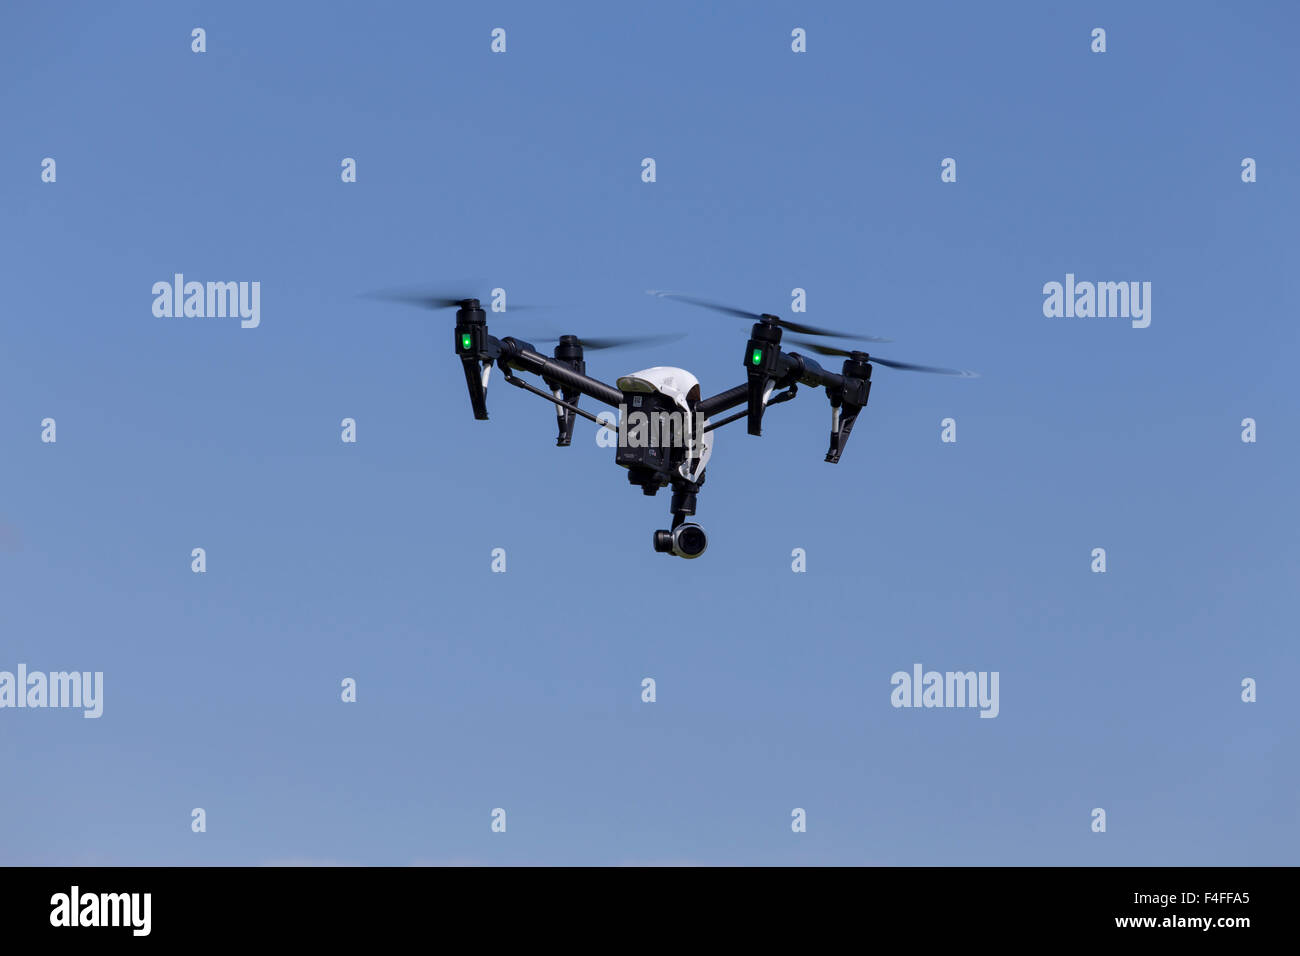 Quadcopter Drone DJI Inspire with camera for aerial photography and videos. Stock Photo